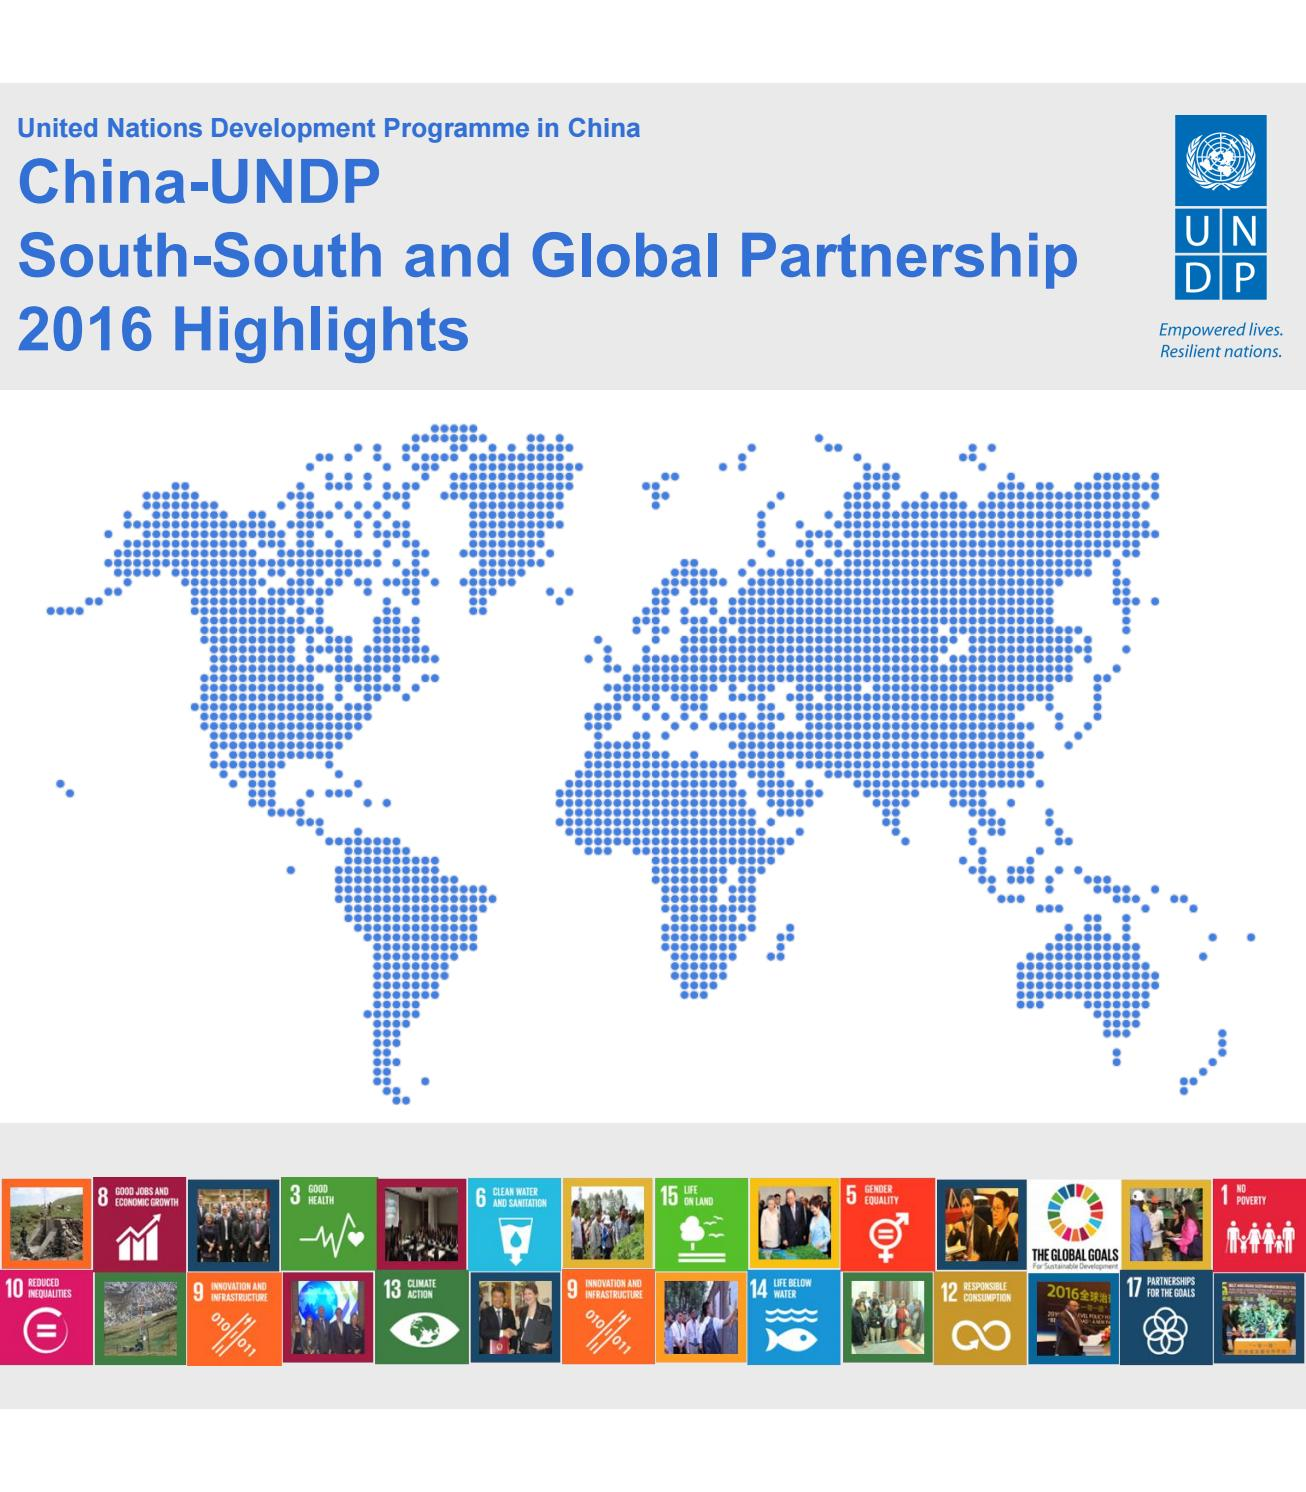 China undp south south and global partnership 2016 highlights by china undp south south and global partnership 2016 highlights by united nations development programme undp china issuu publicscrutiny Image collections